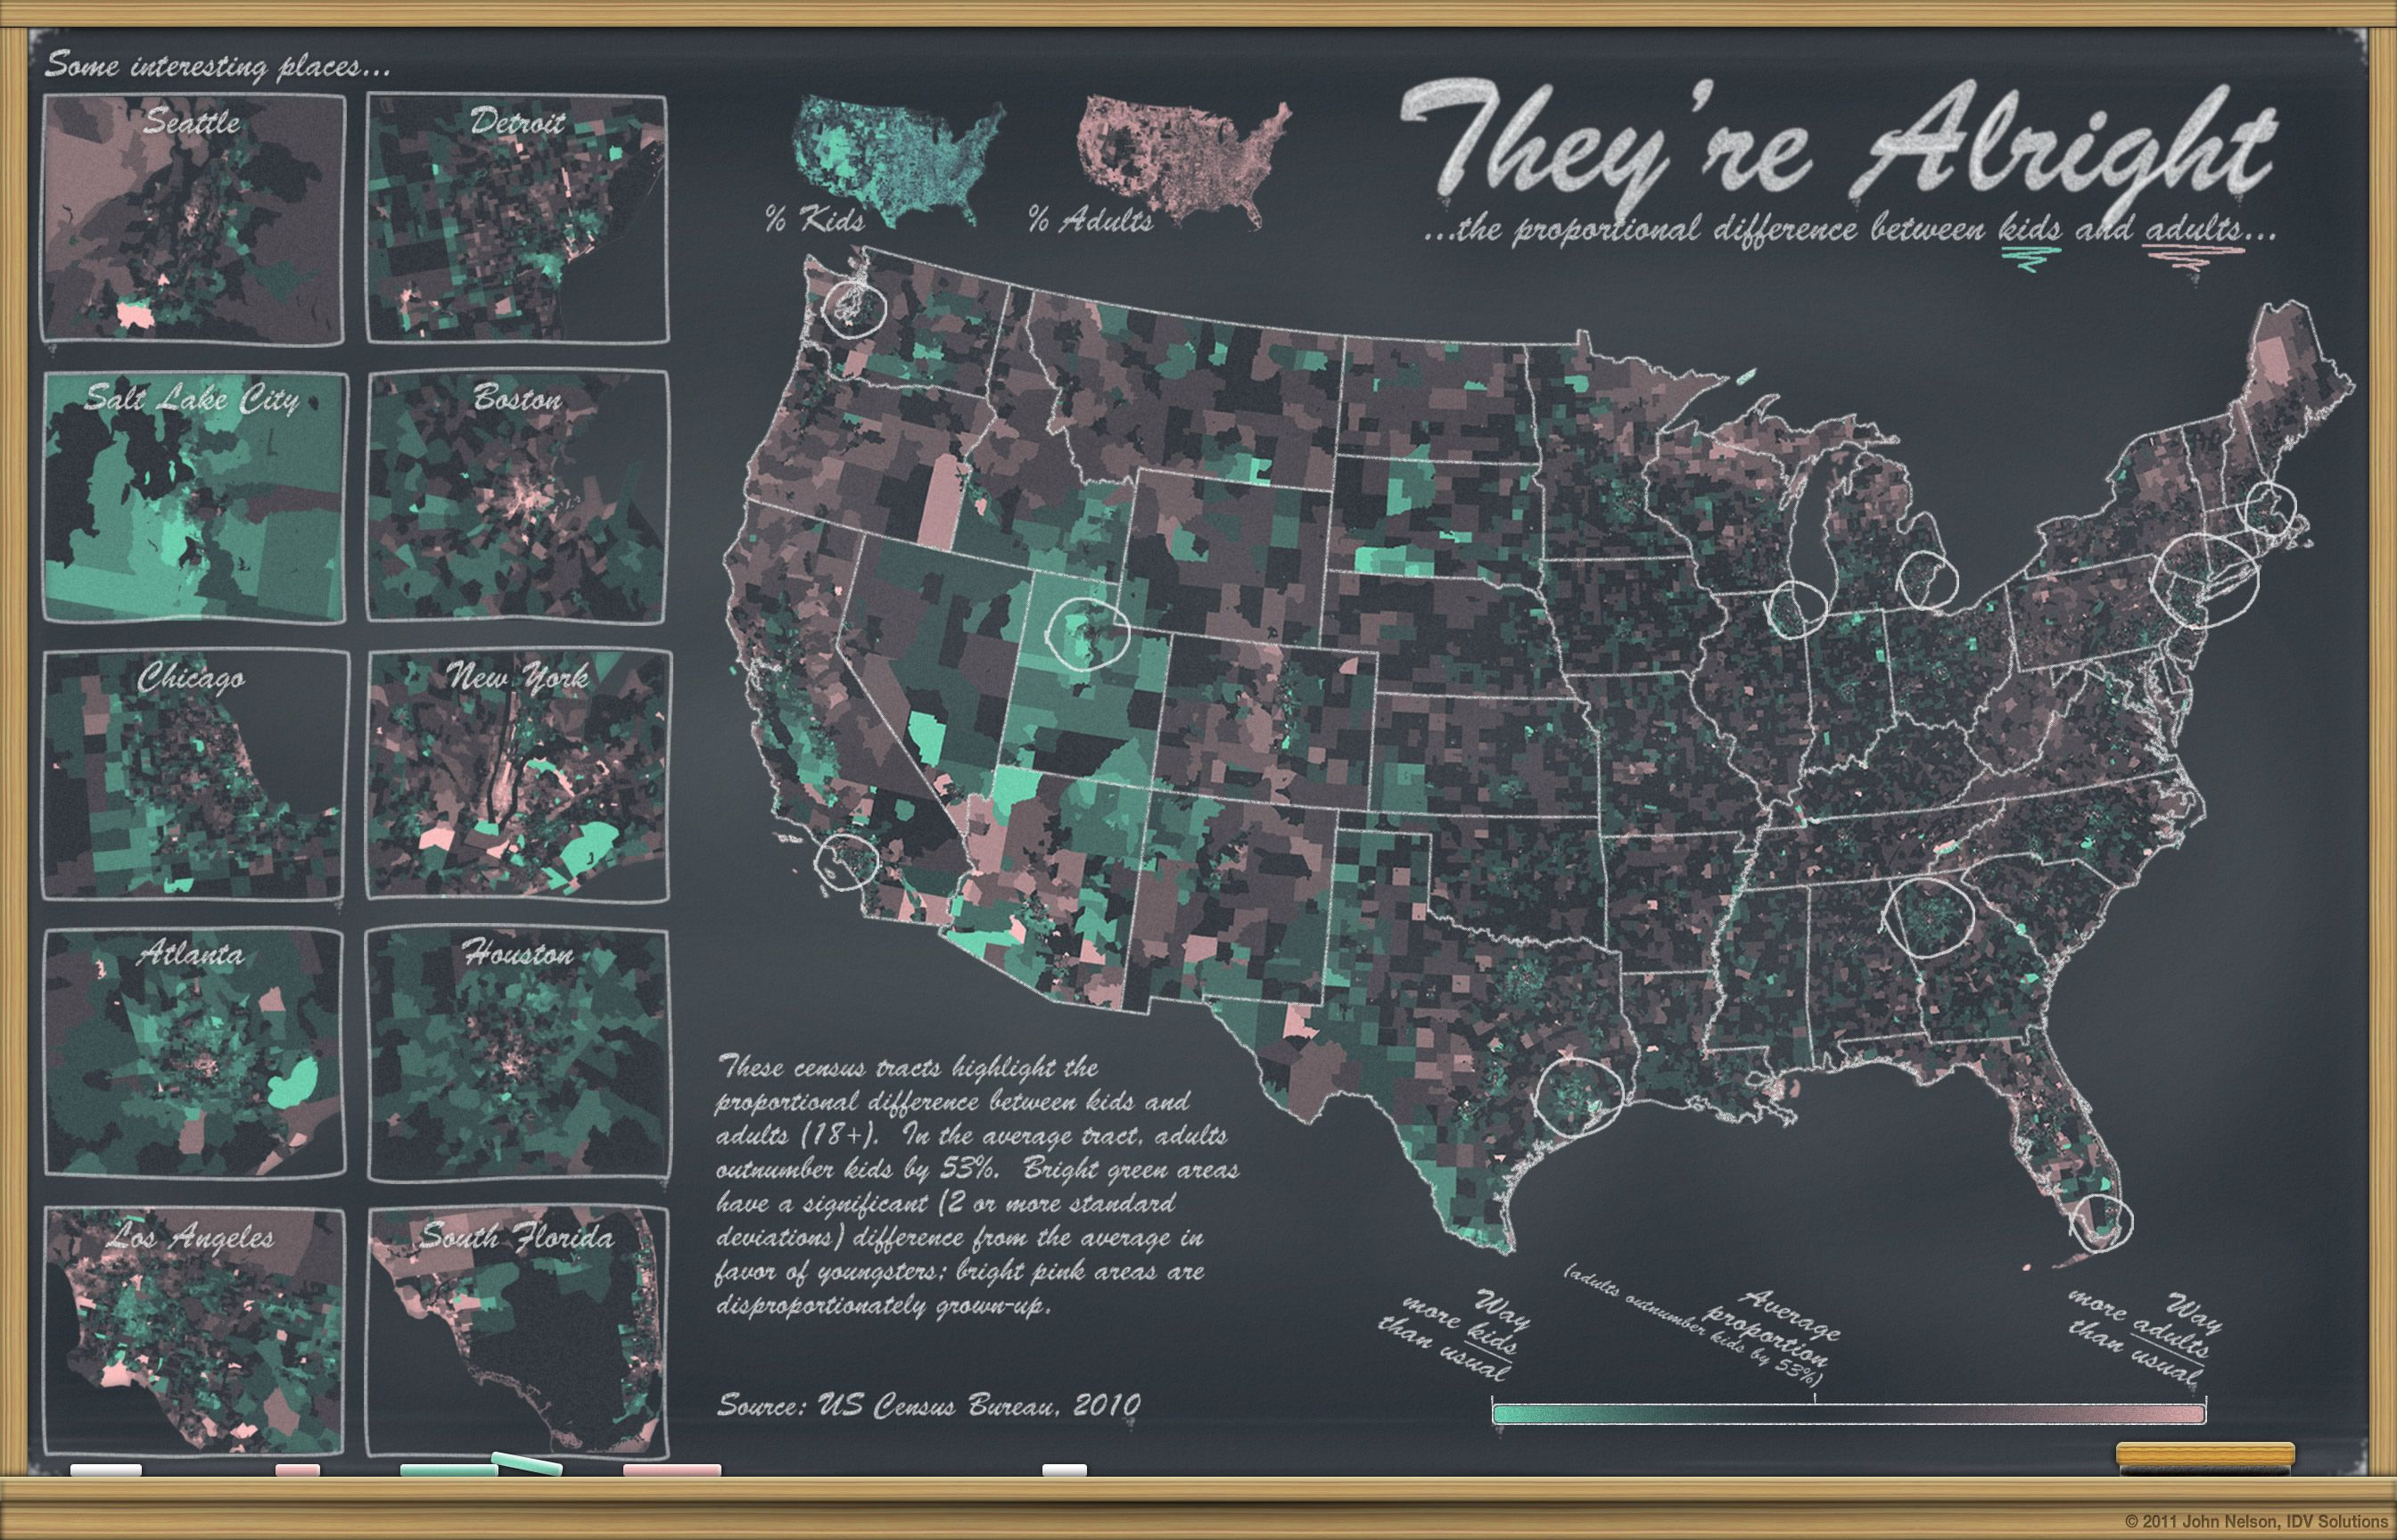 Oldies and Youngins: Mapping the Age Gap